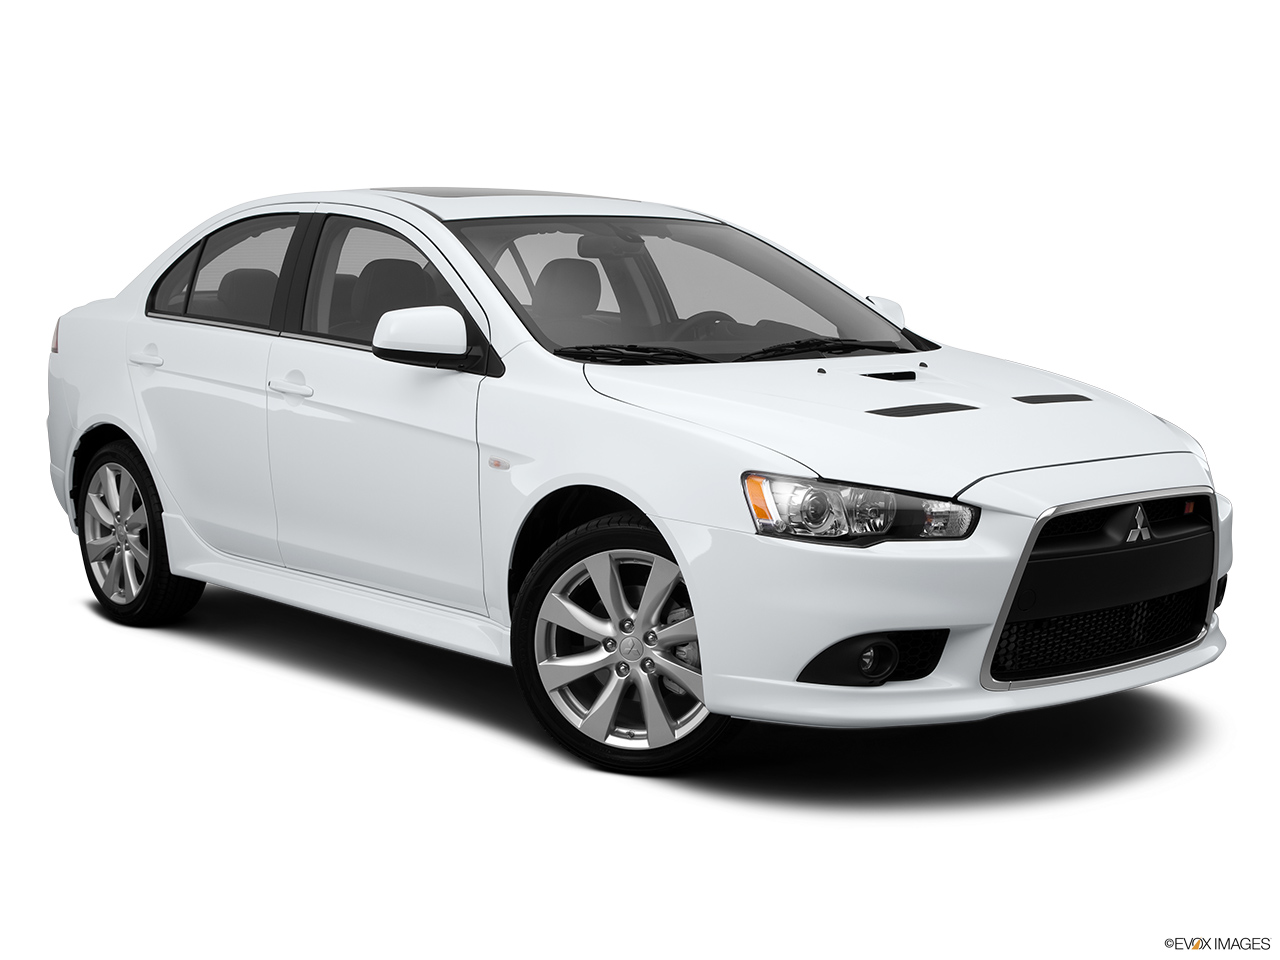 2014 mitsubishi lancer sedan cvt gt fwd. Black Bedroom Furniture Sets. Home Design Ideas